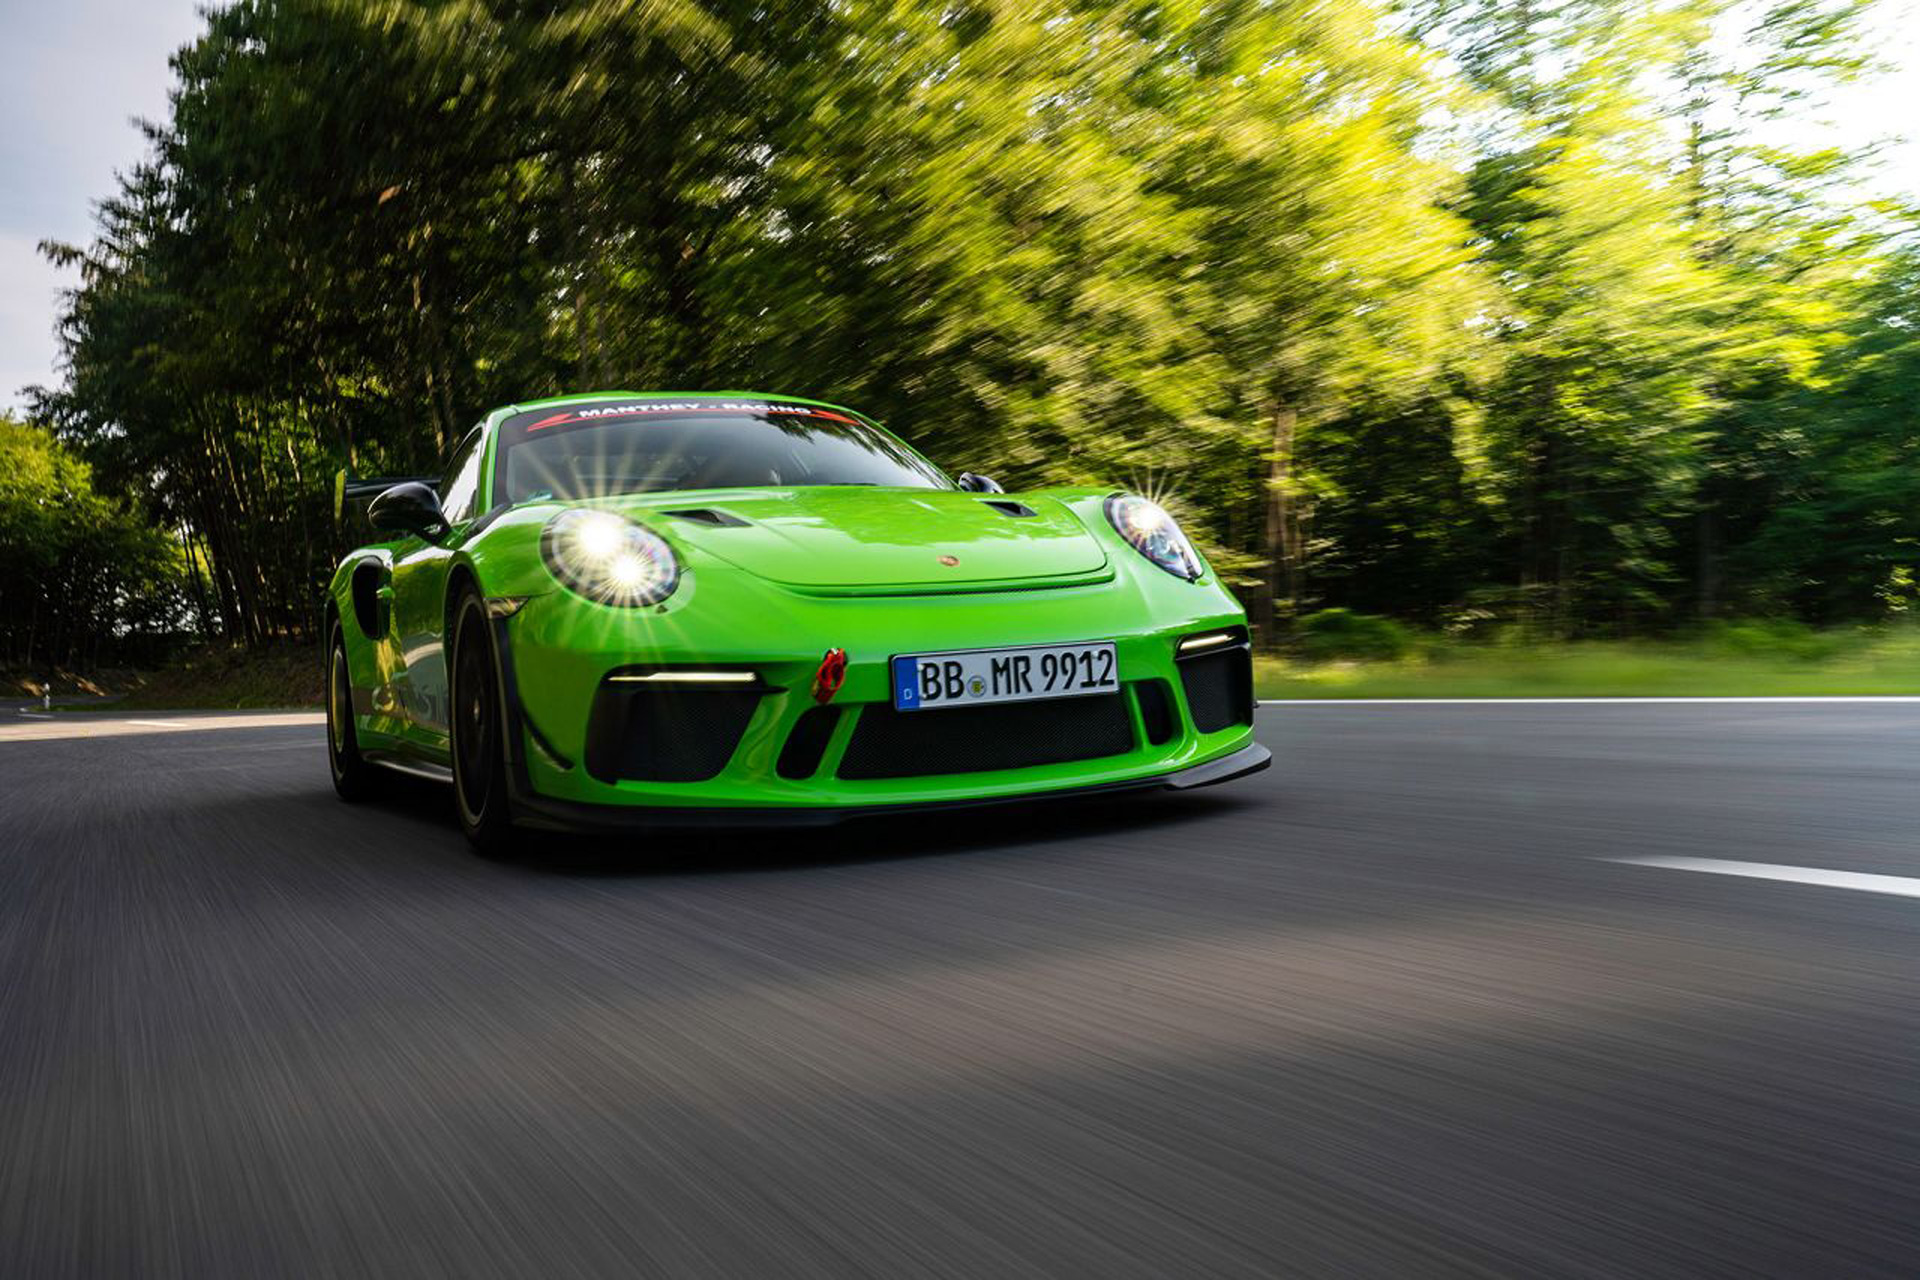 Manthey-Racing rolls out upgrades for the 991 Porsche 911 GT3 RS - Motor Authority